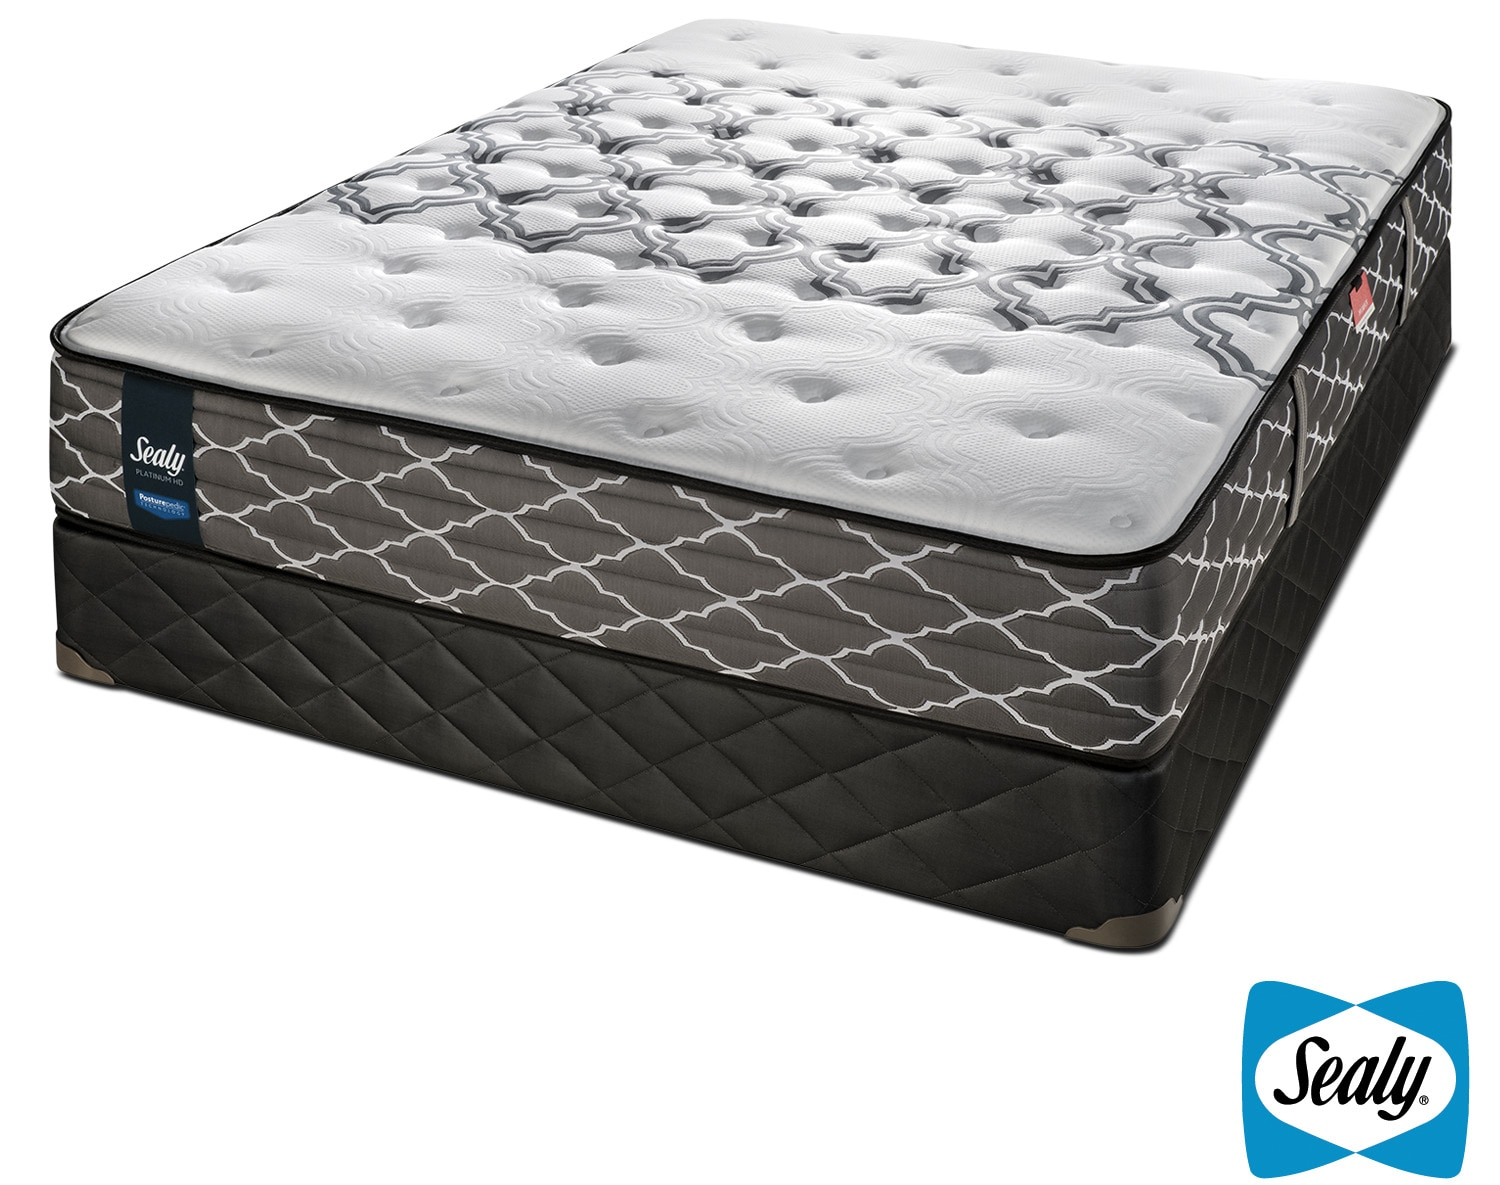 Sealy Late Night Hybrid Extra Firm Queen Mattress and Boxspring Set